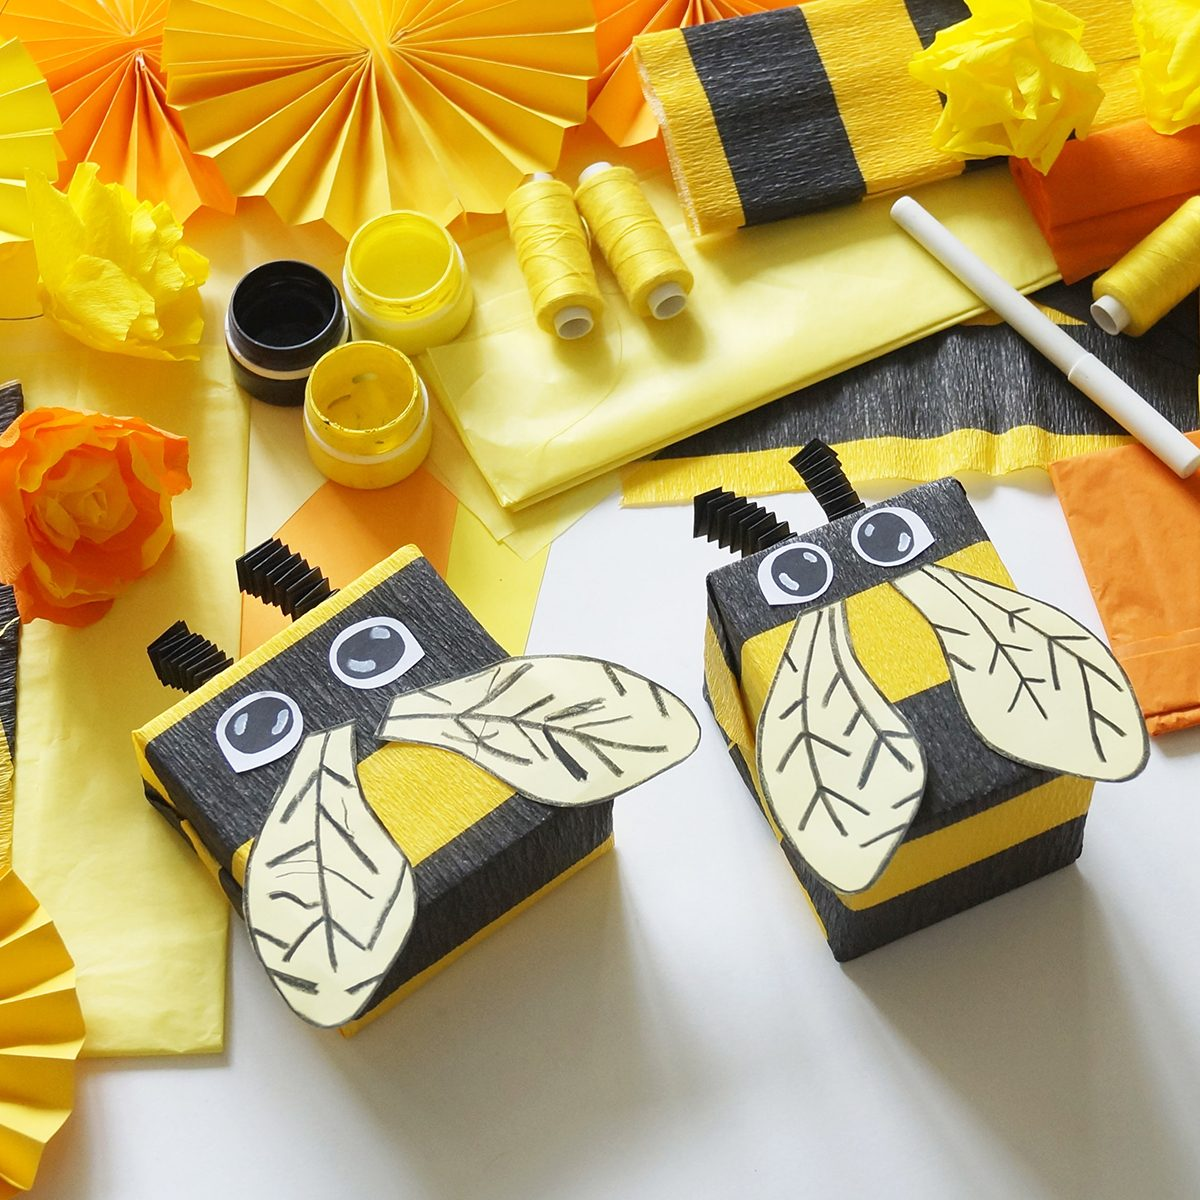 The child loves crafts bee. The child's hands. Gift packing. Materials for creativity.